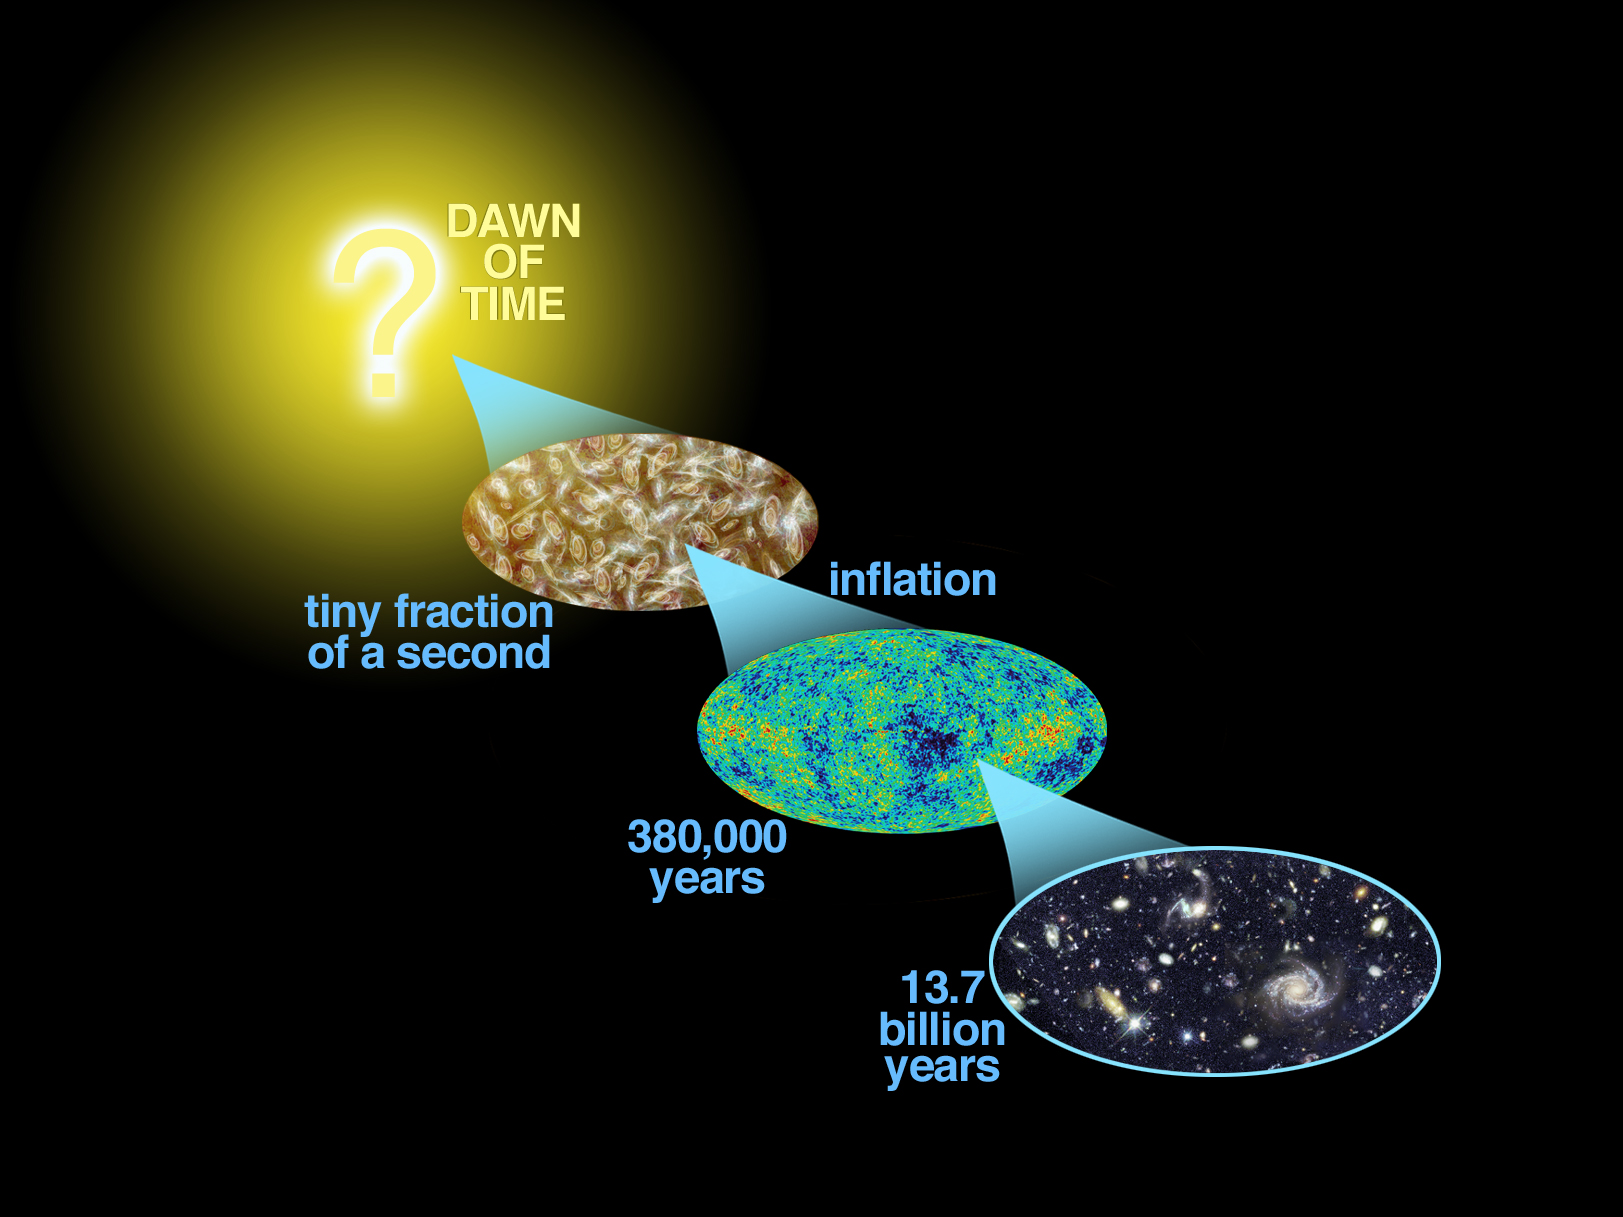 big-bang nucleosynthesis a probe of the early universe This comparison was used for the determination of the baryonic density of the universe for this purpose, it is now superseded by the analysis of the cosmic microwave background radiation anisotropies big-bang nucleosynthesis remains, nevertheless, a valuable tool to probe the physics of the early universe.